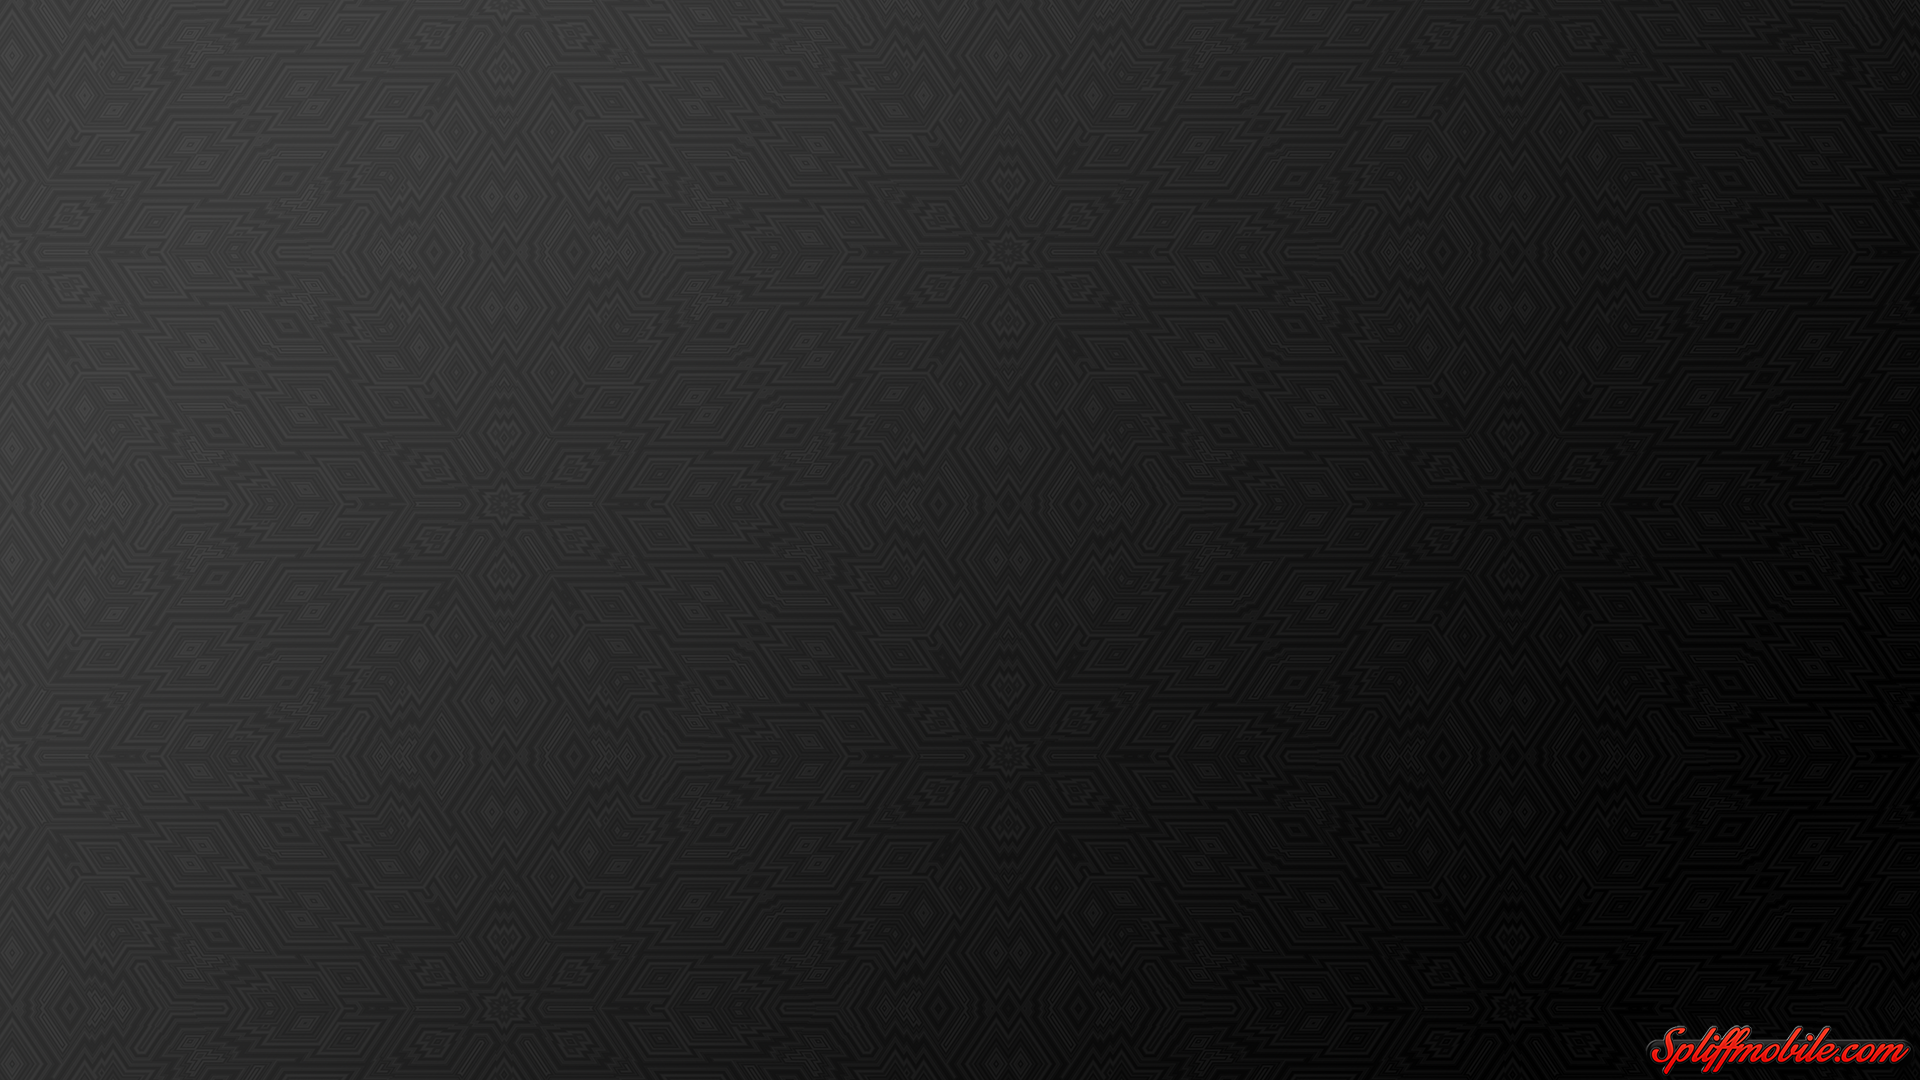 Hd black design wallpaper for Black wallpaper with design